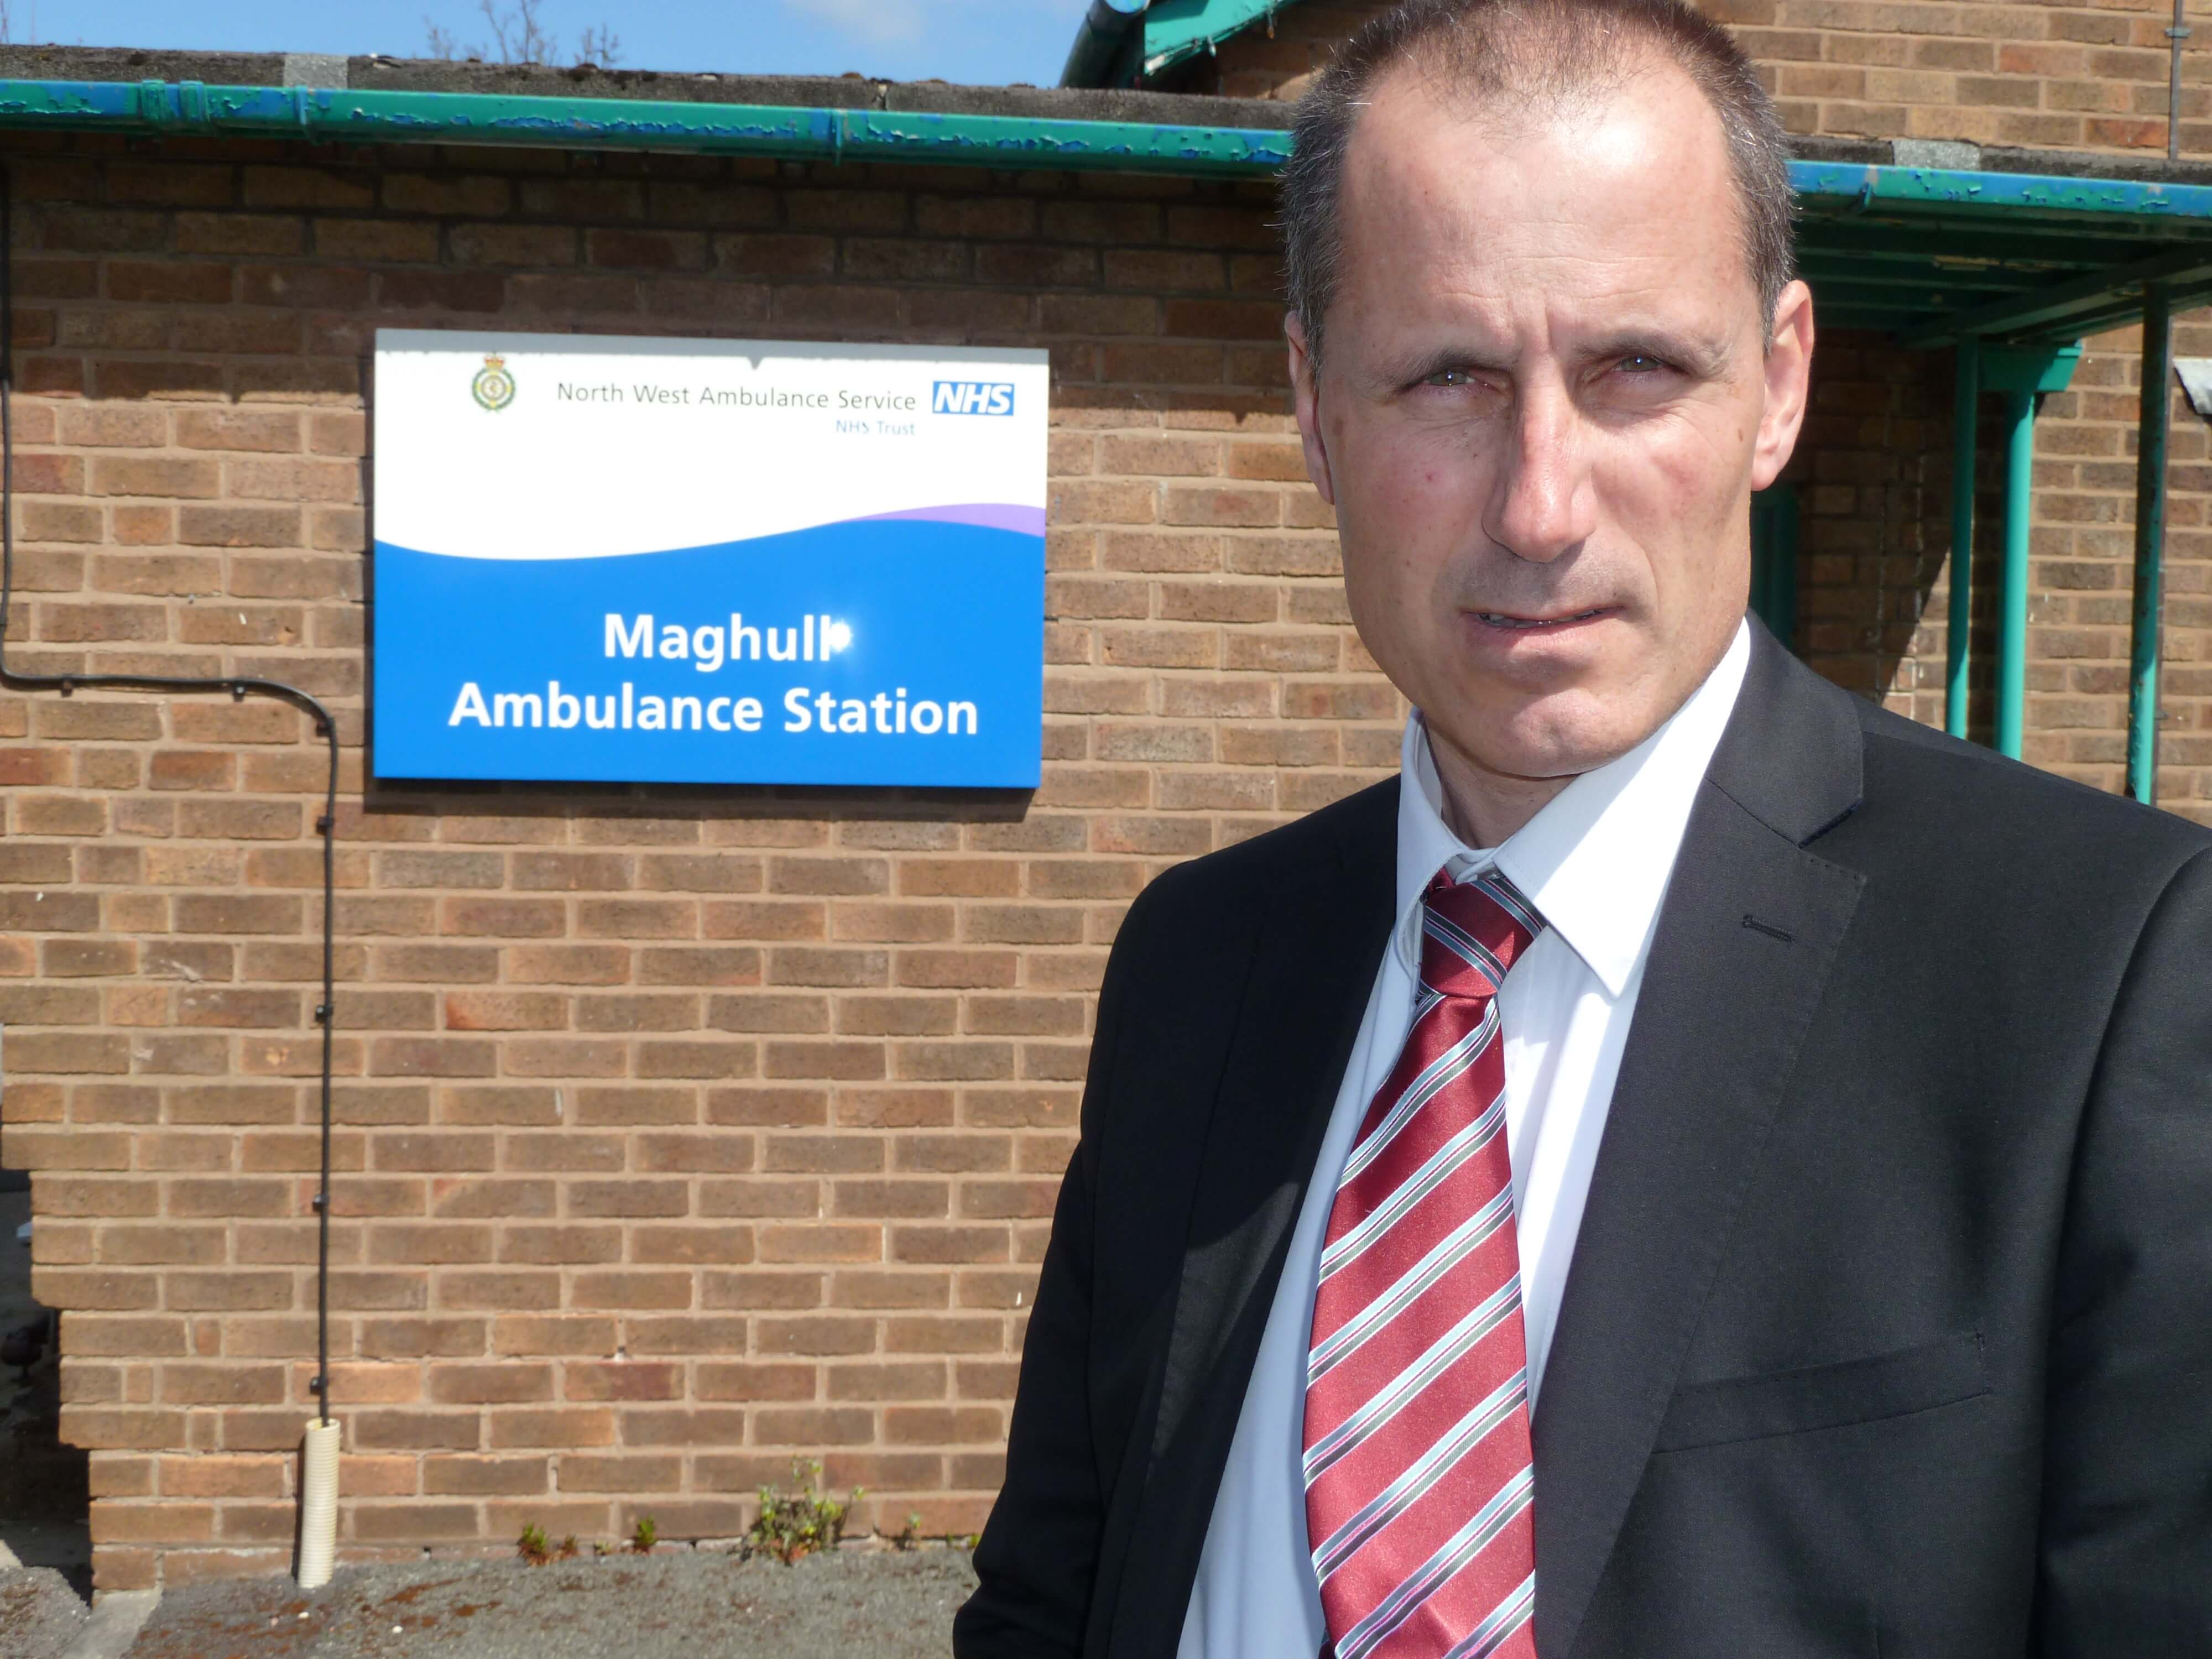 Sefton Central Labour MP Bill Esterson warns that the loss of Maghull Ambulance Station in Lydiate risks public safety.